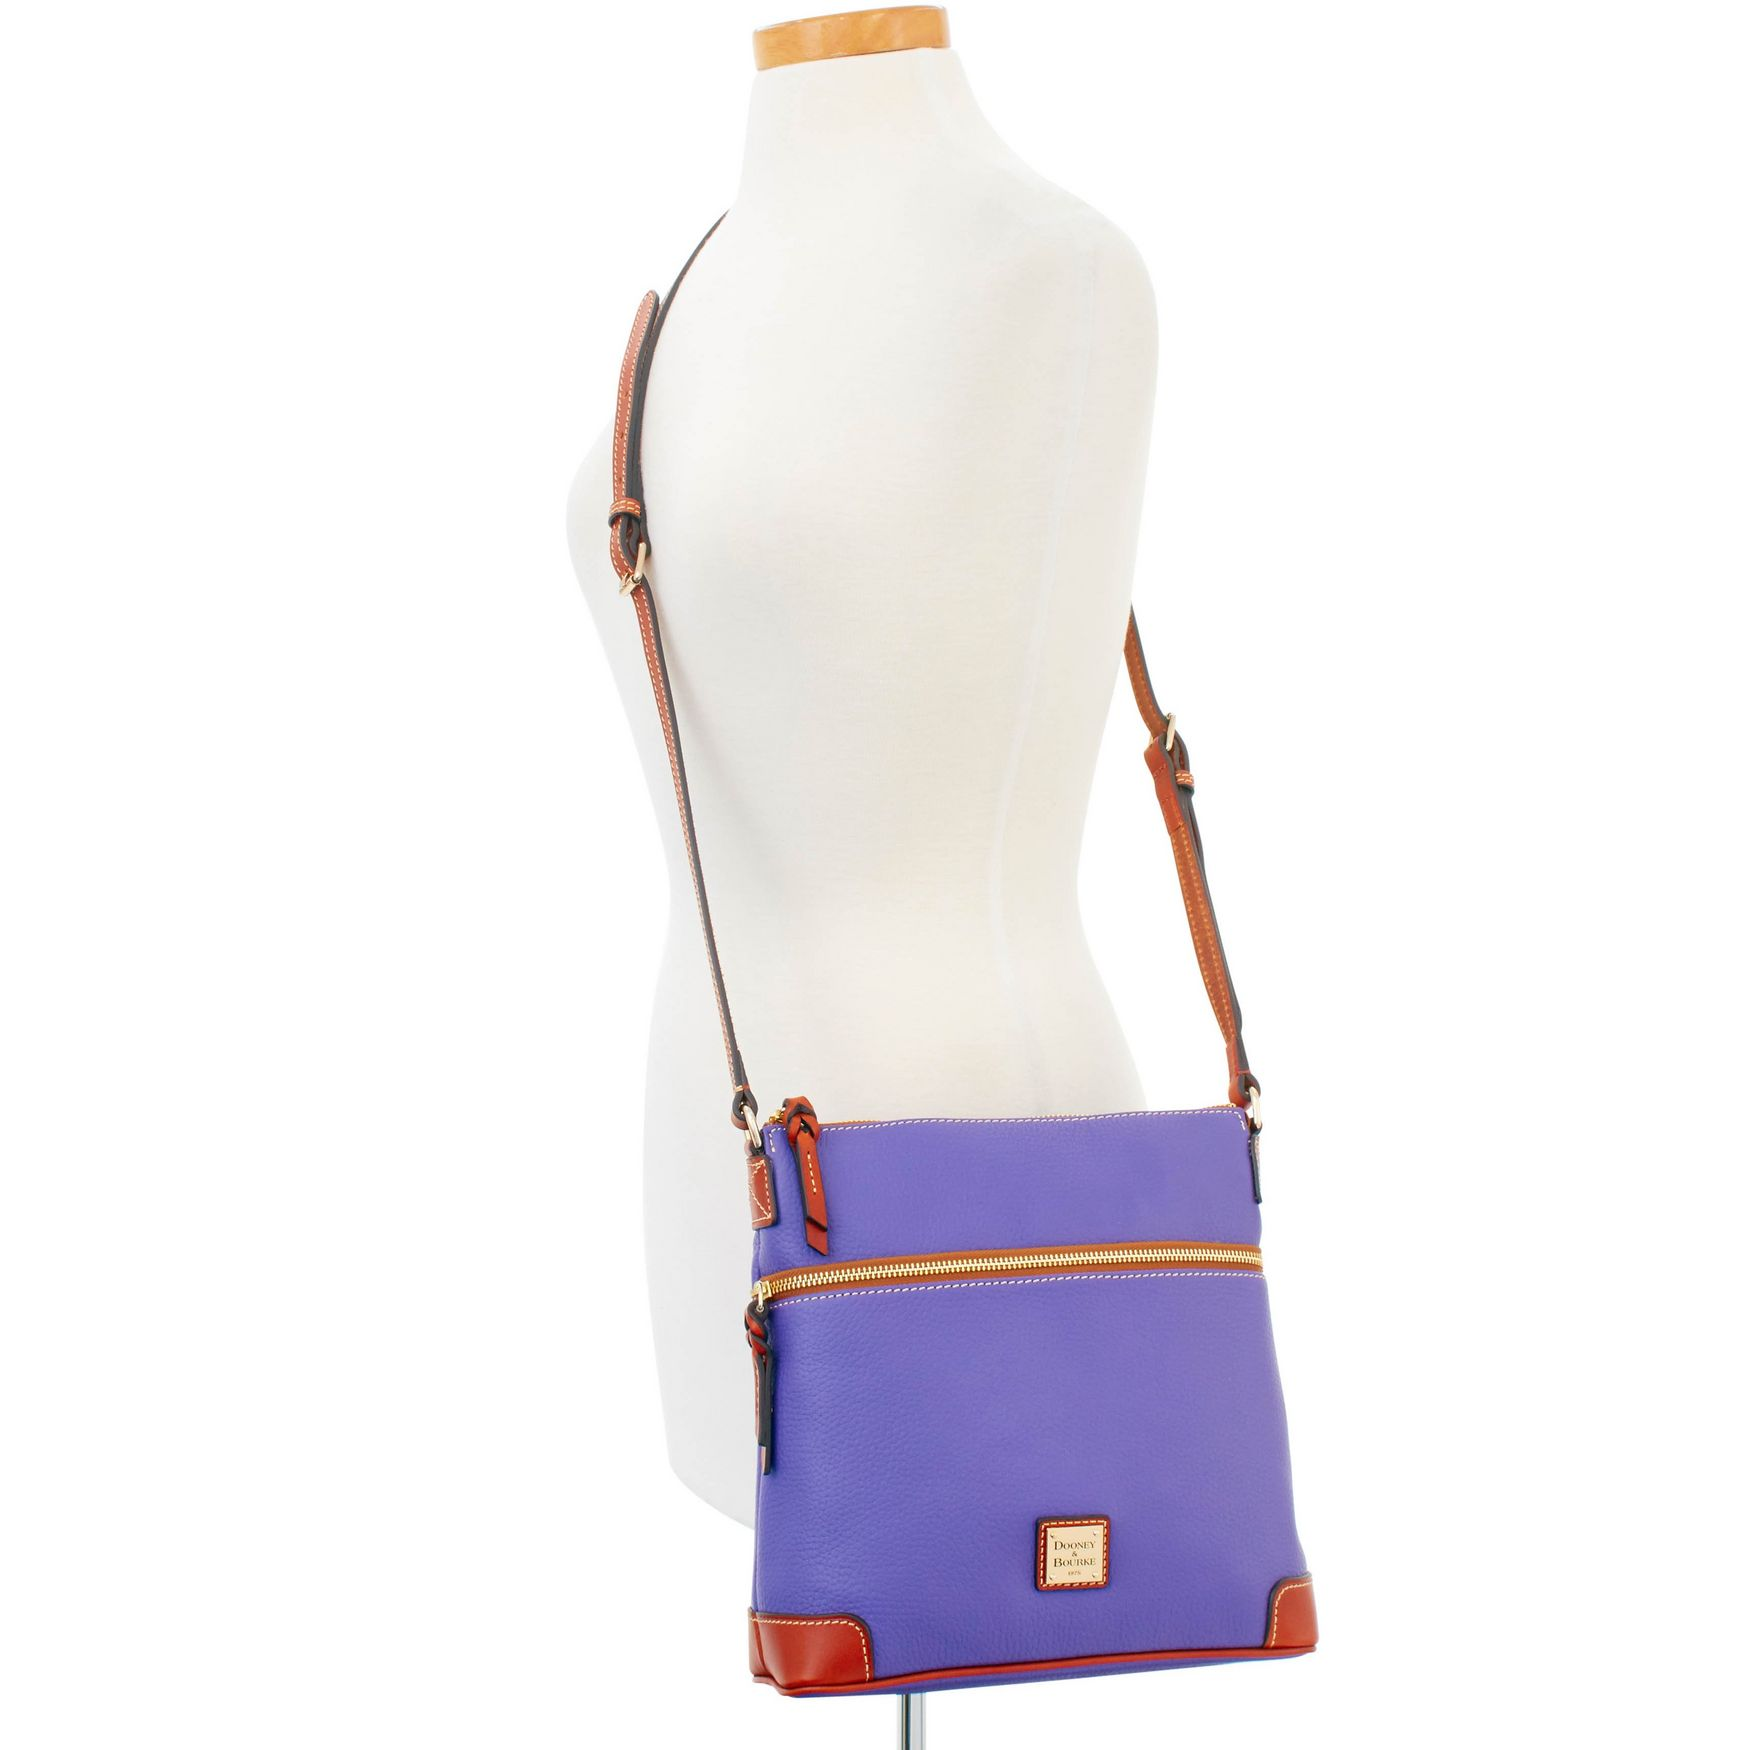 Dooney-amp-Bourke-Pebble-Grain-Crossbody-Medium-Wristlet-Shoulder-Bag thumbnail 6